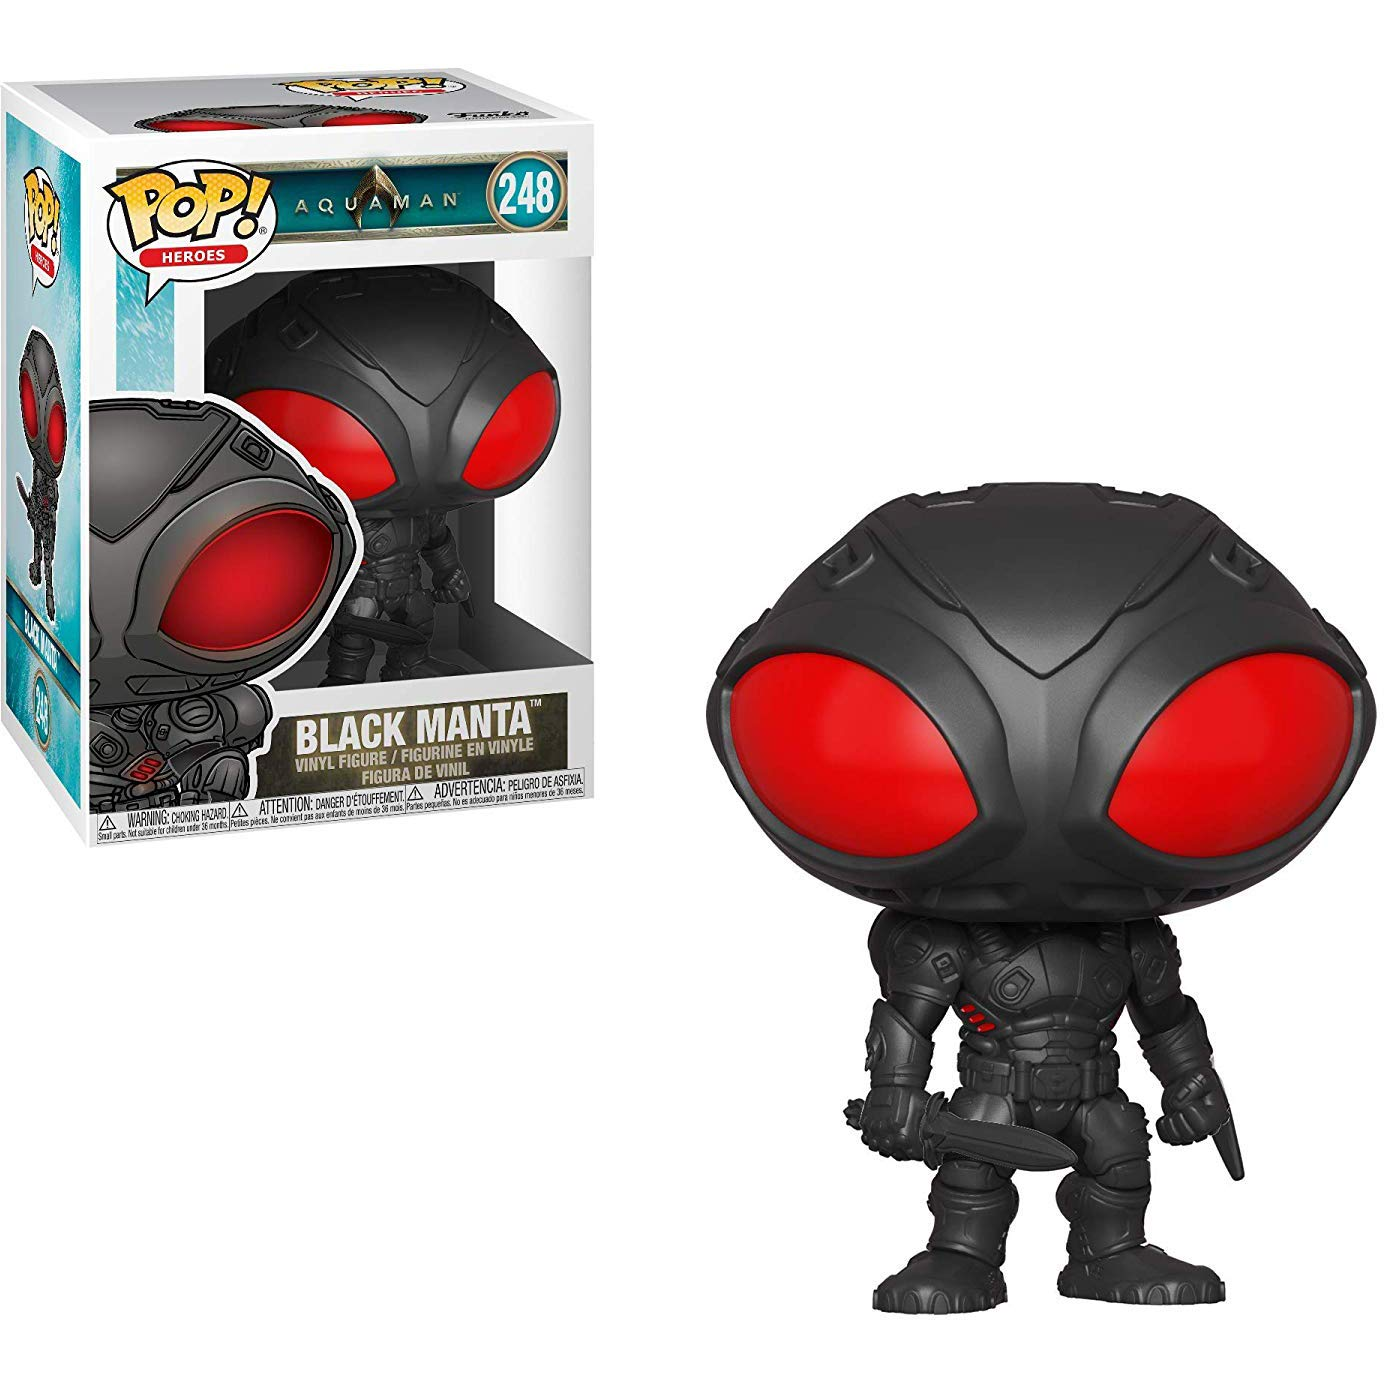 Heroes Vinyl Figure /& 1 PET Plastic Graphical Protector Bundle Funko Black Manta: Aquaman x POP #248 // 31183 - B BCC94Y4E